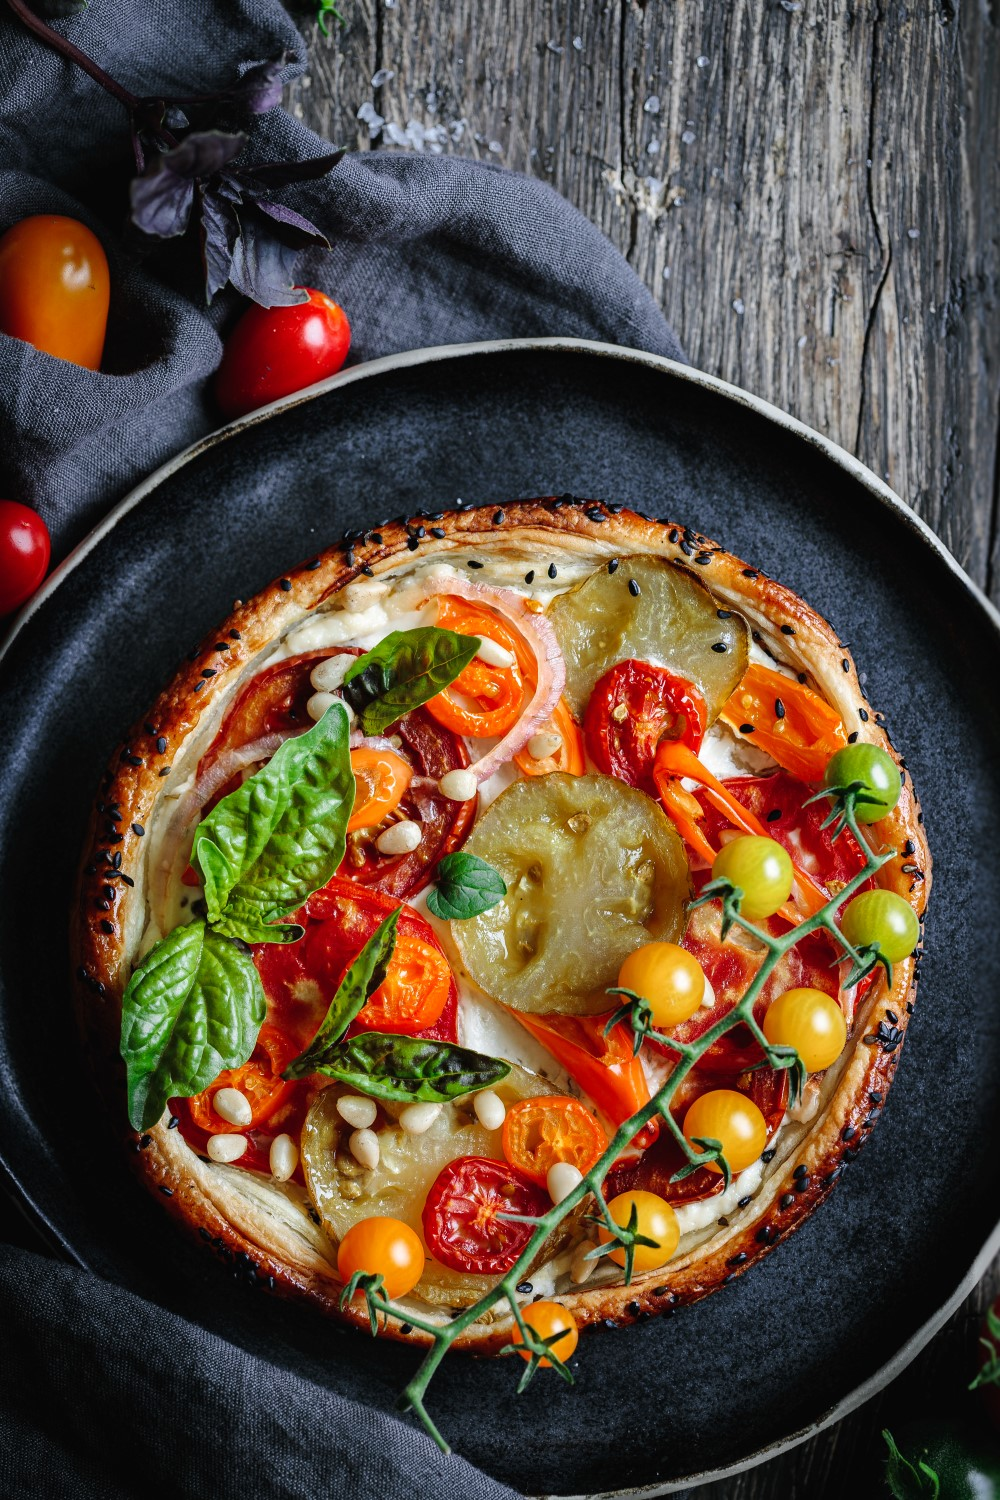 Pizza with fresh tomatoes for the article 5 best camera angles for food photography + which equipment to use by Anja Burgar